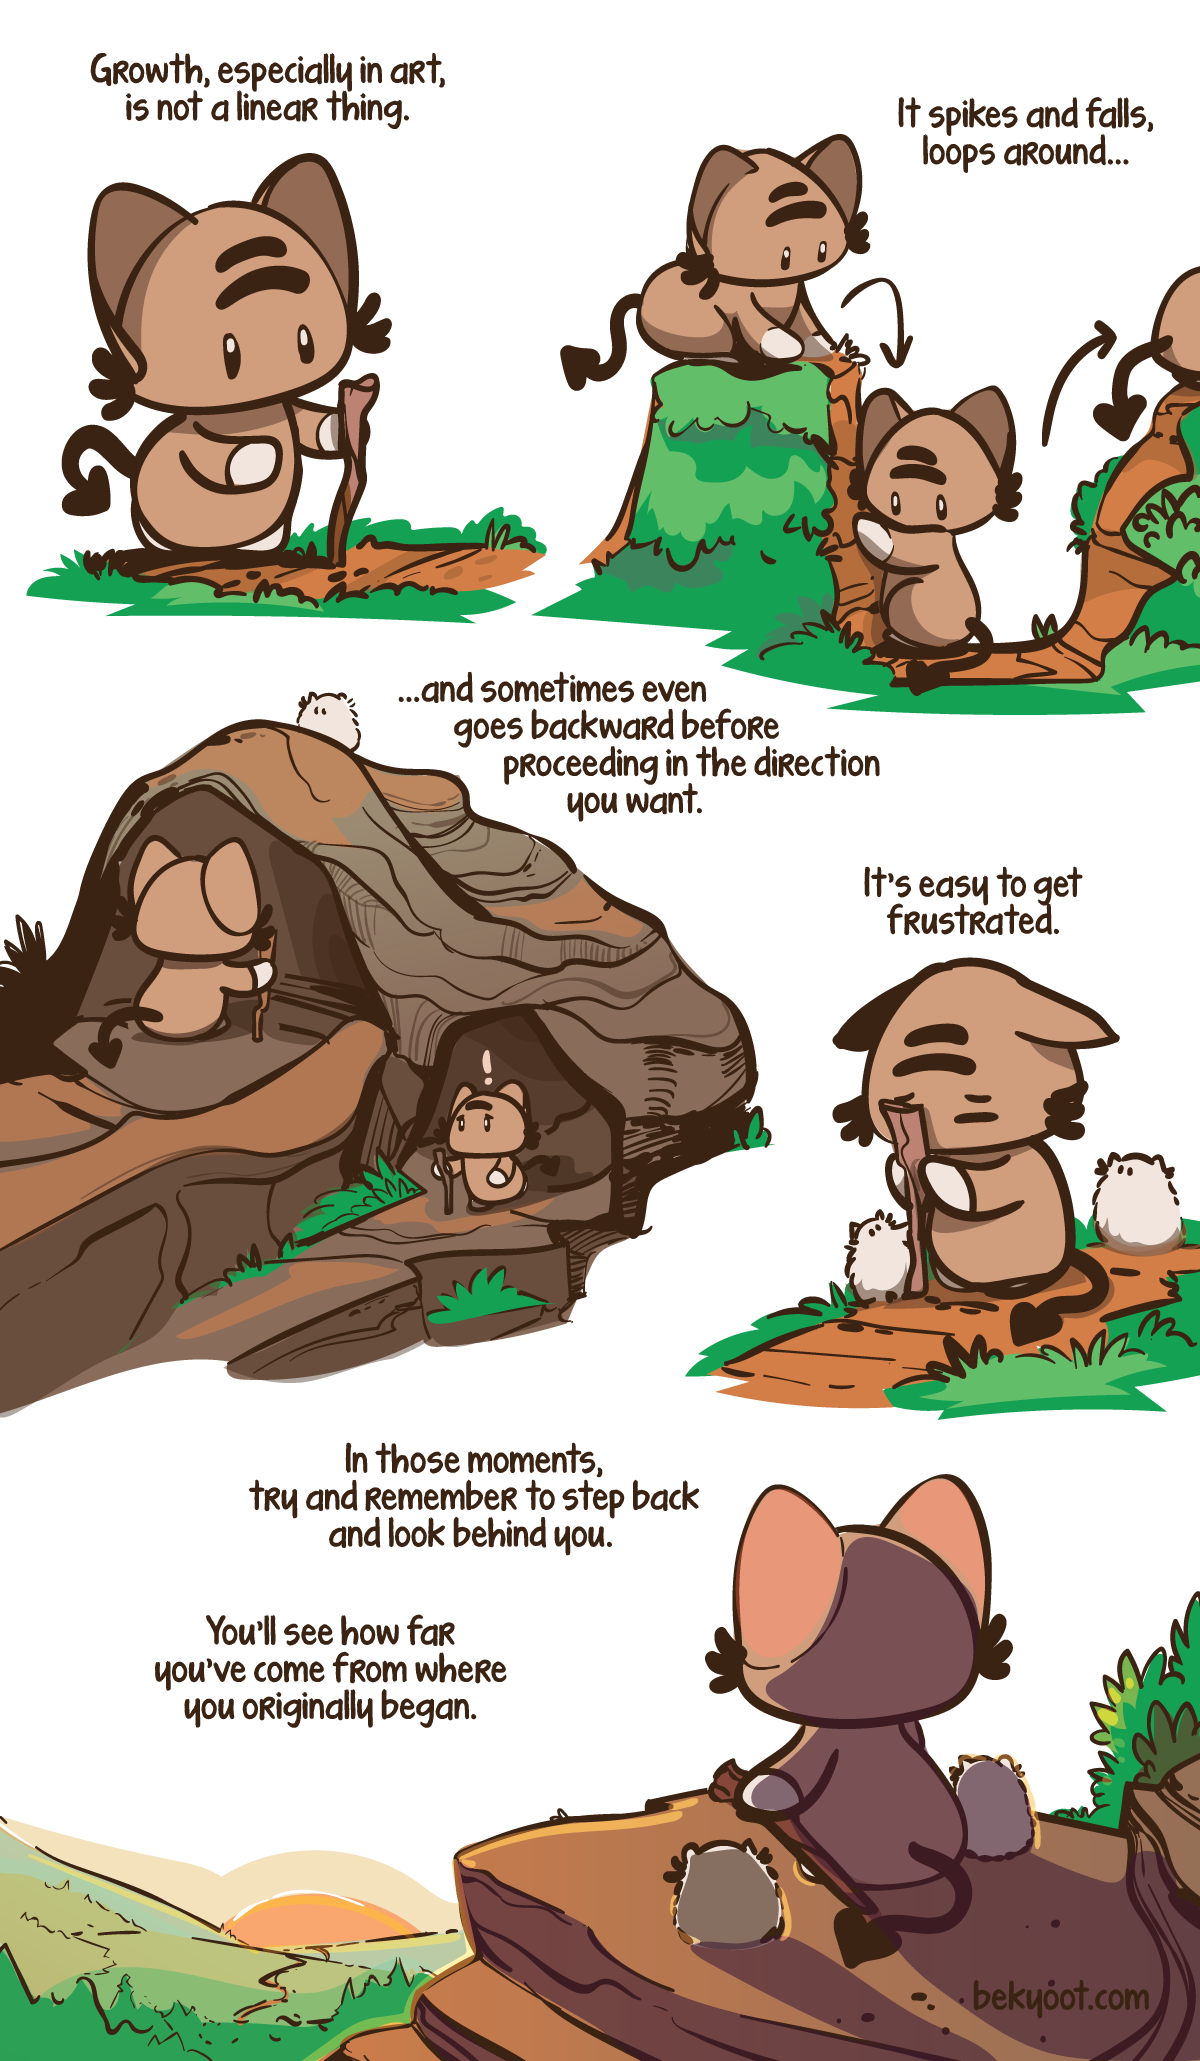 Momocheet serves up another wholesome comic reminder to be kind to yourself.